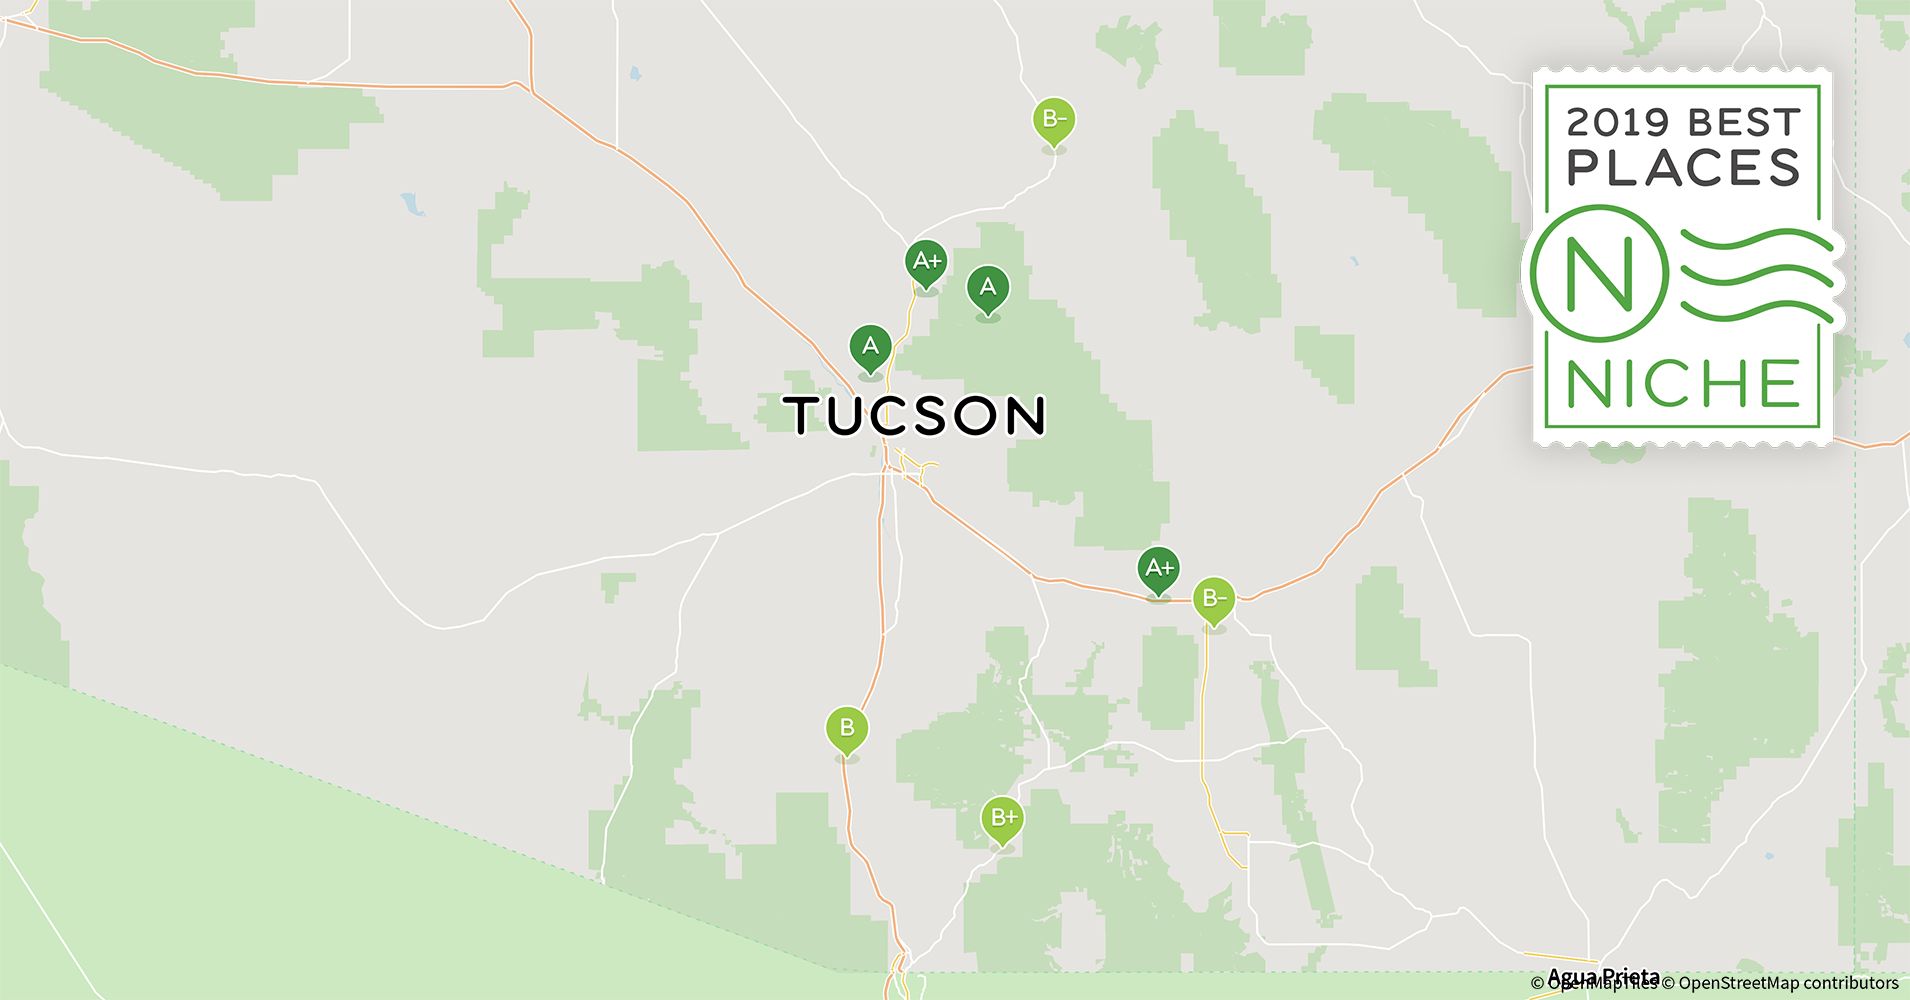 2019 Best Places To Live In The Tucson Area Niche